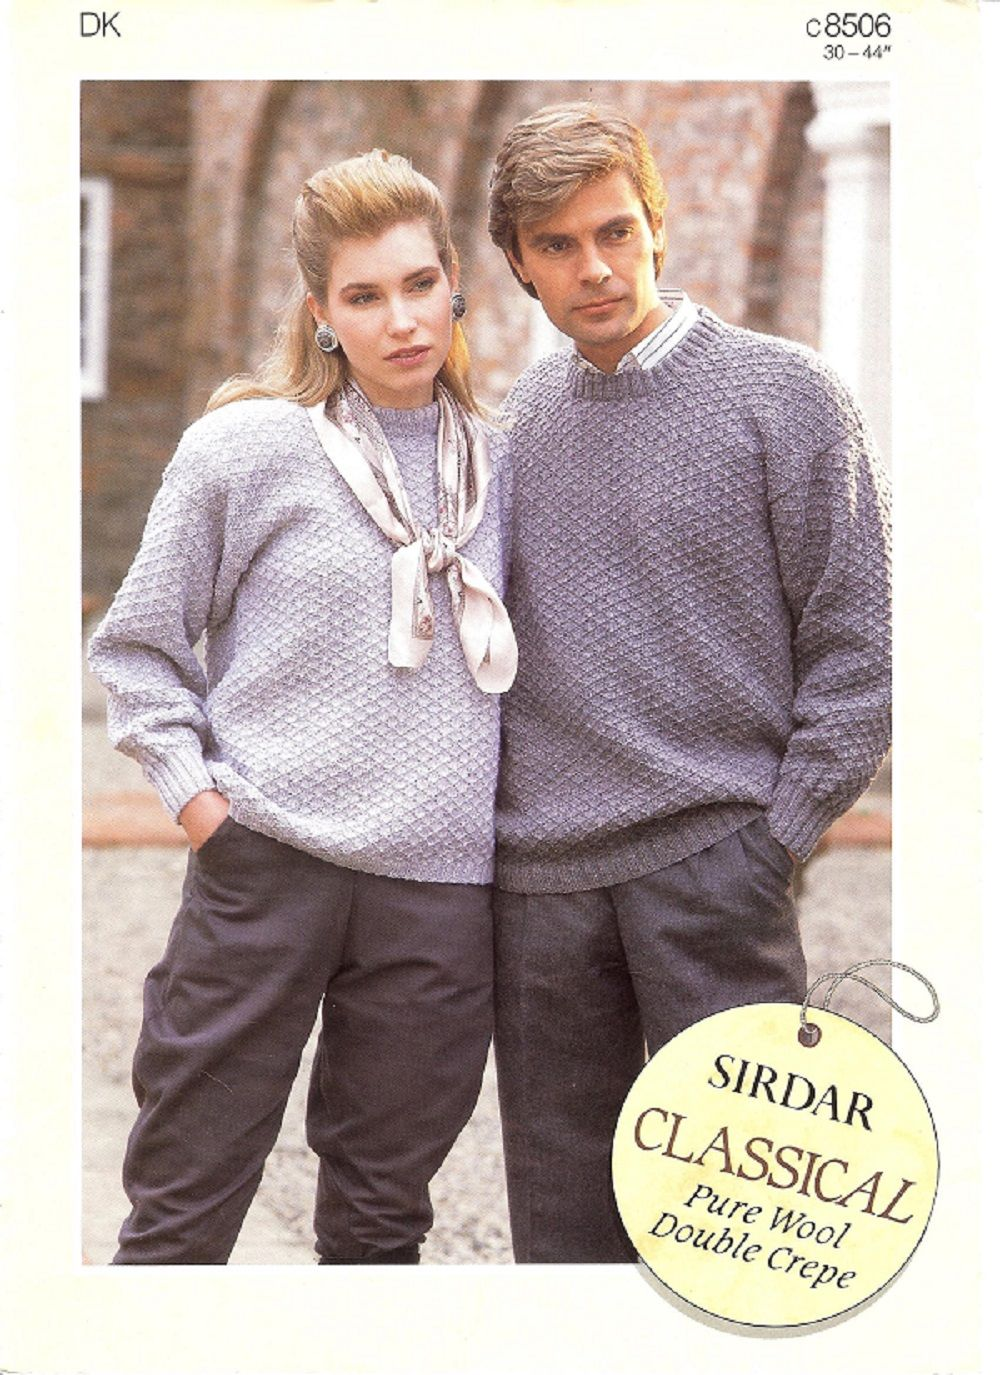 Sirdar Knitting Pattern 8506, DK, His & Hers Sweaters | Knitting ...